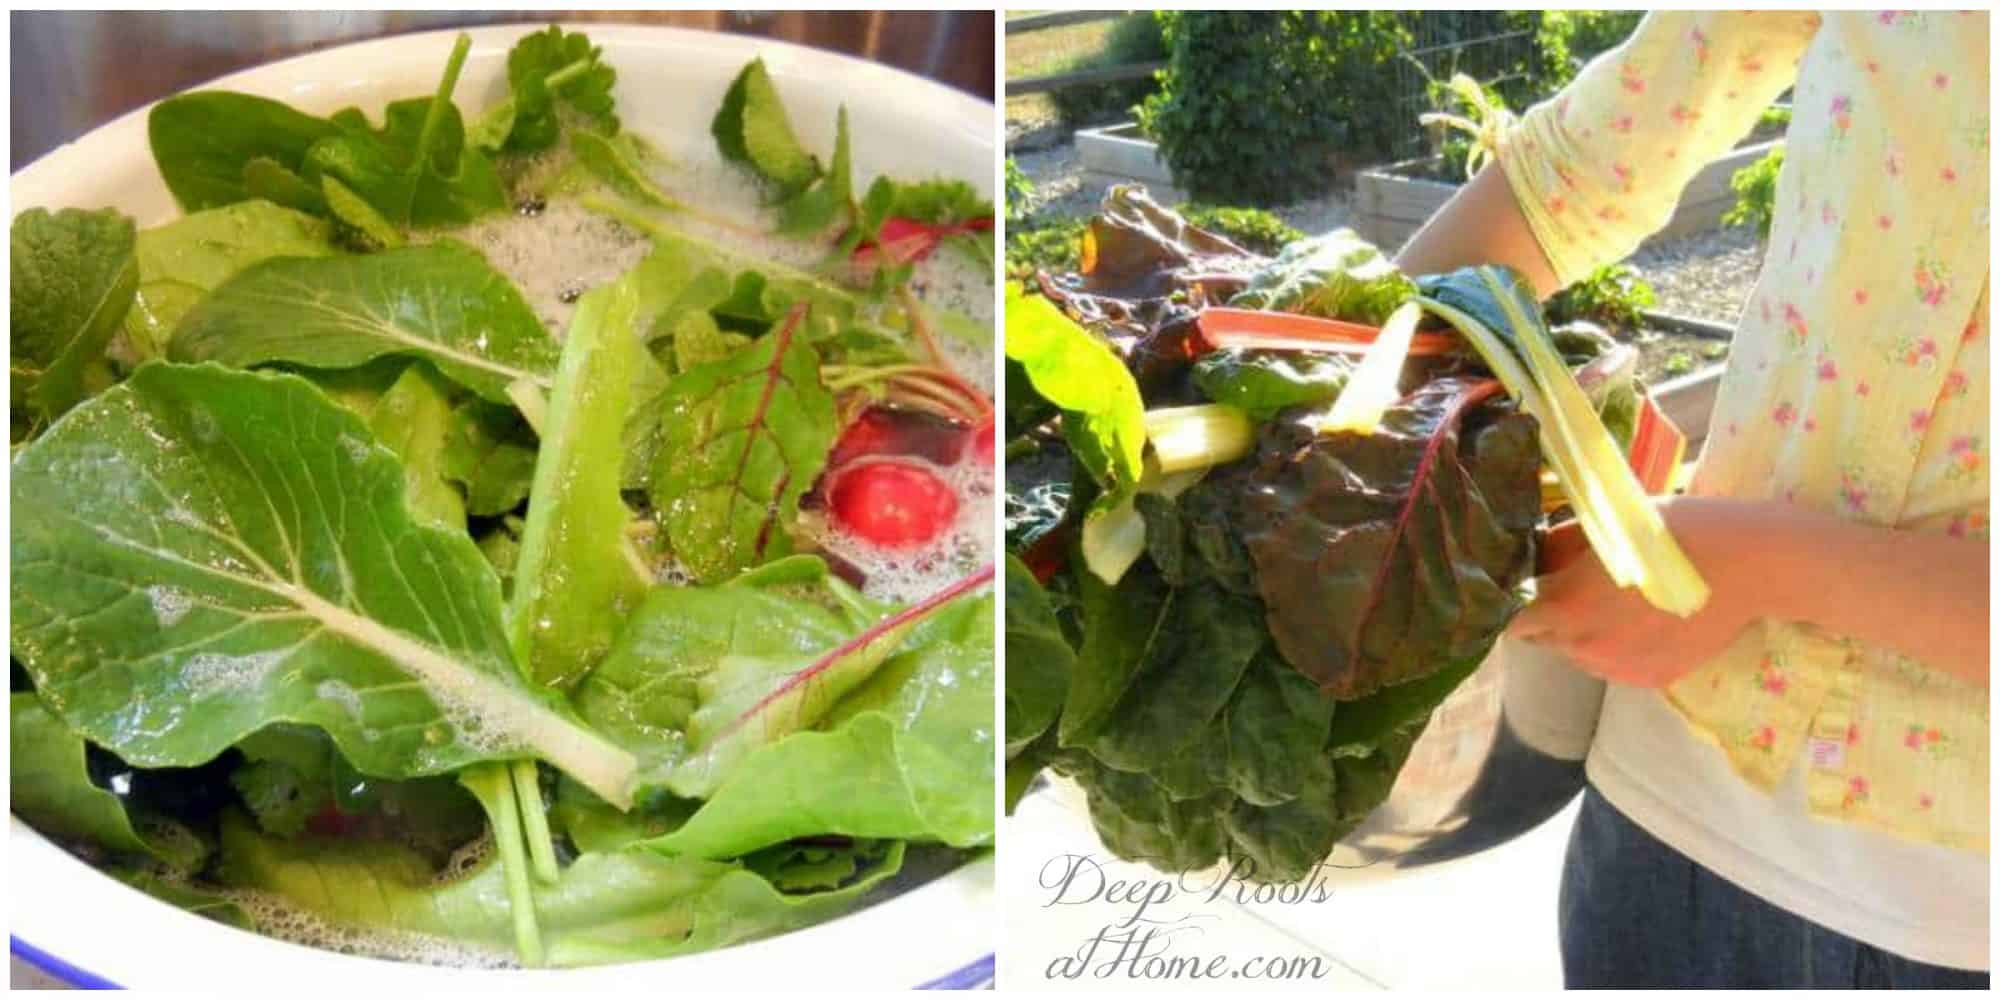 The In & Outs Of A Delightful And Productive (Cool Weather) Garden, fresh greens from the garden